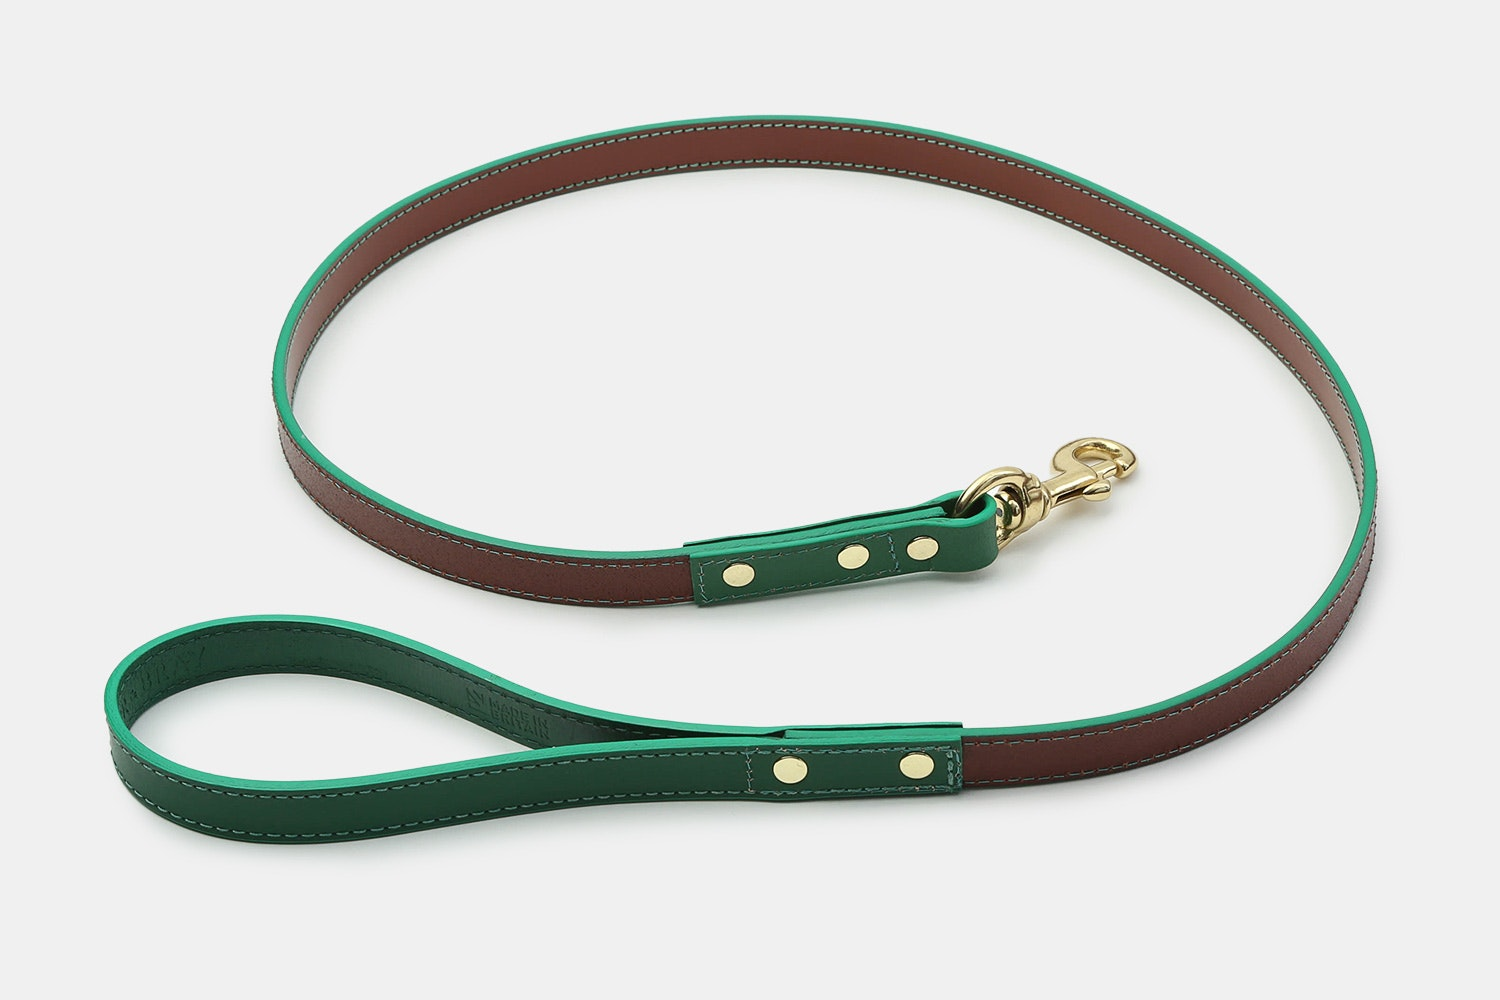 The British Belt Co. Dog Collar & Lead